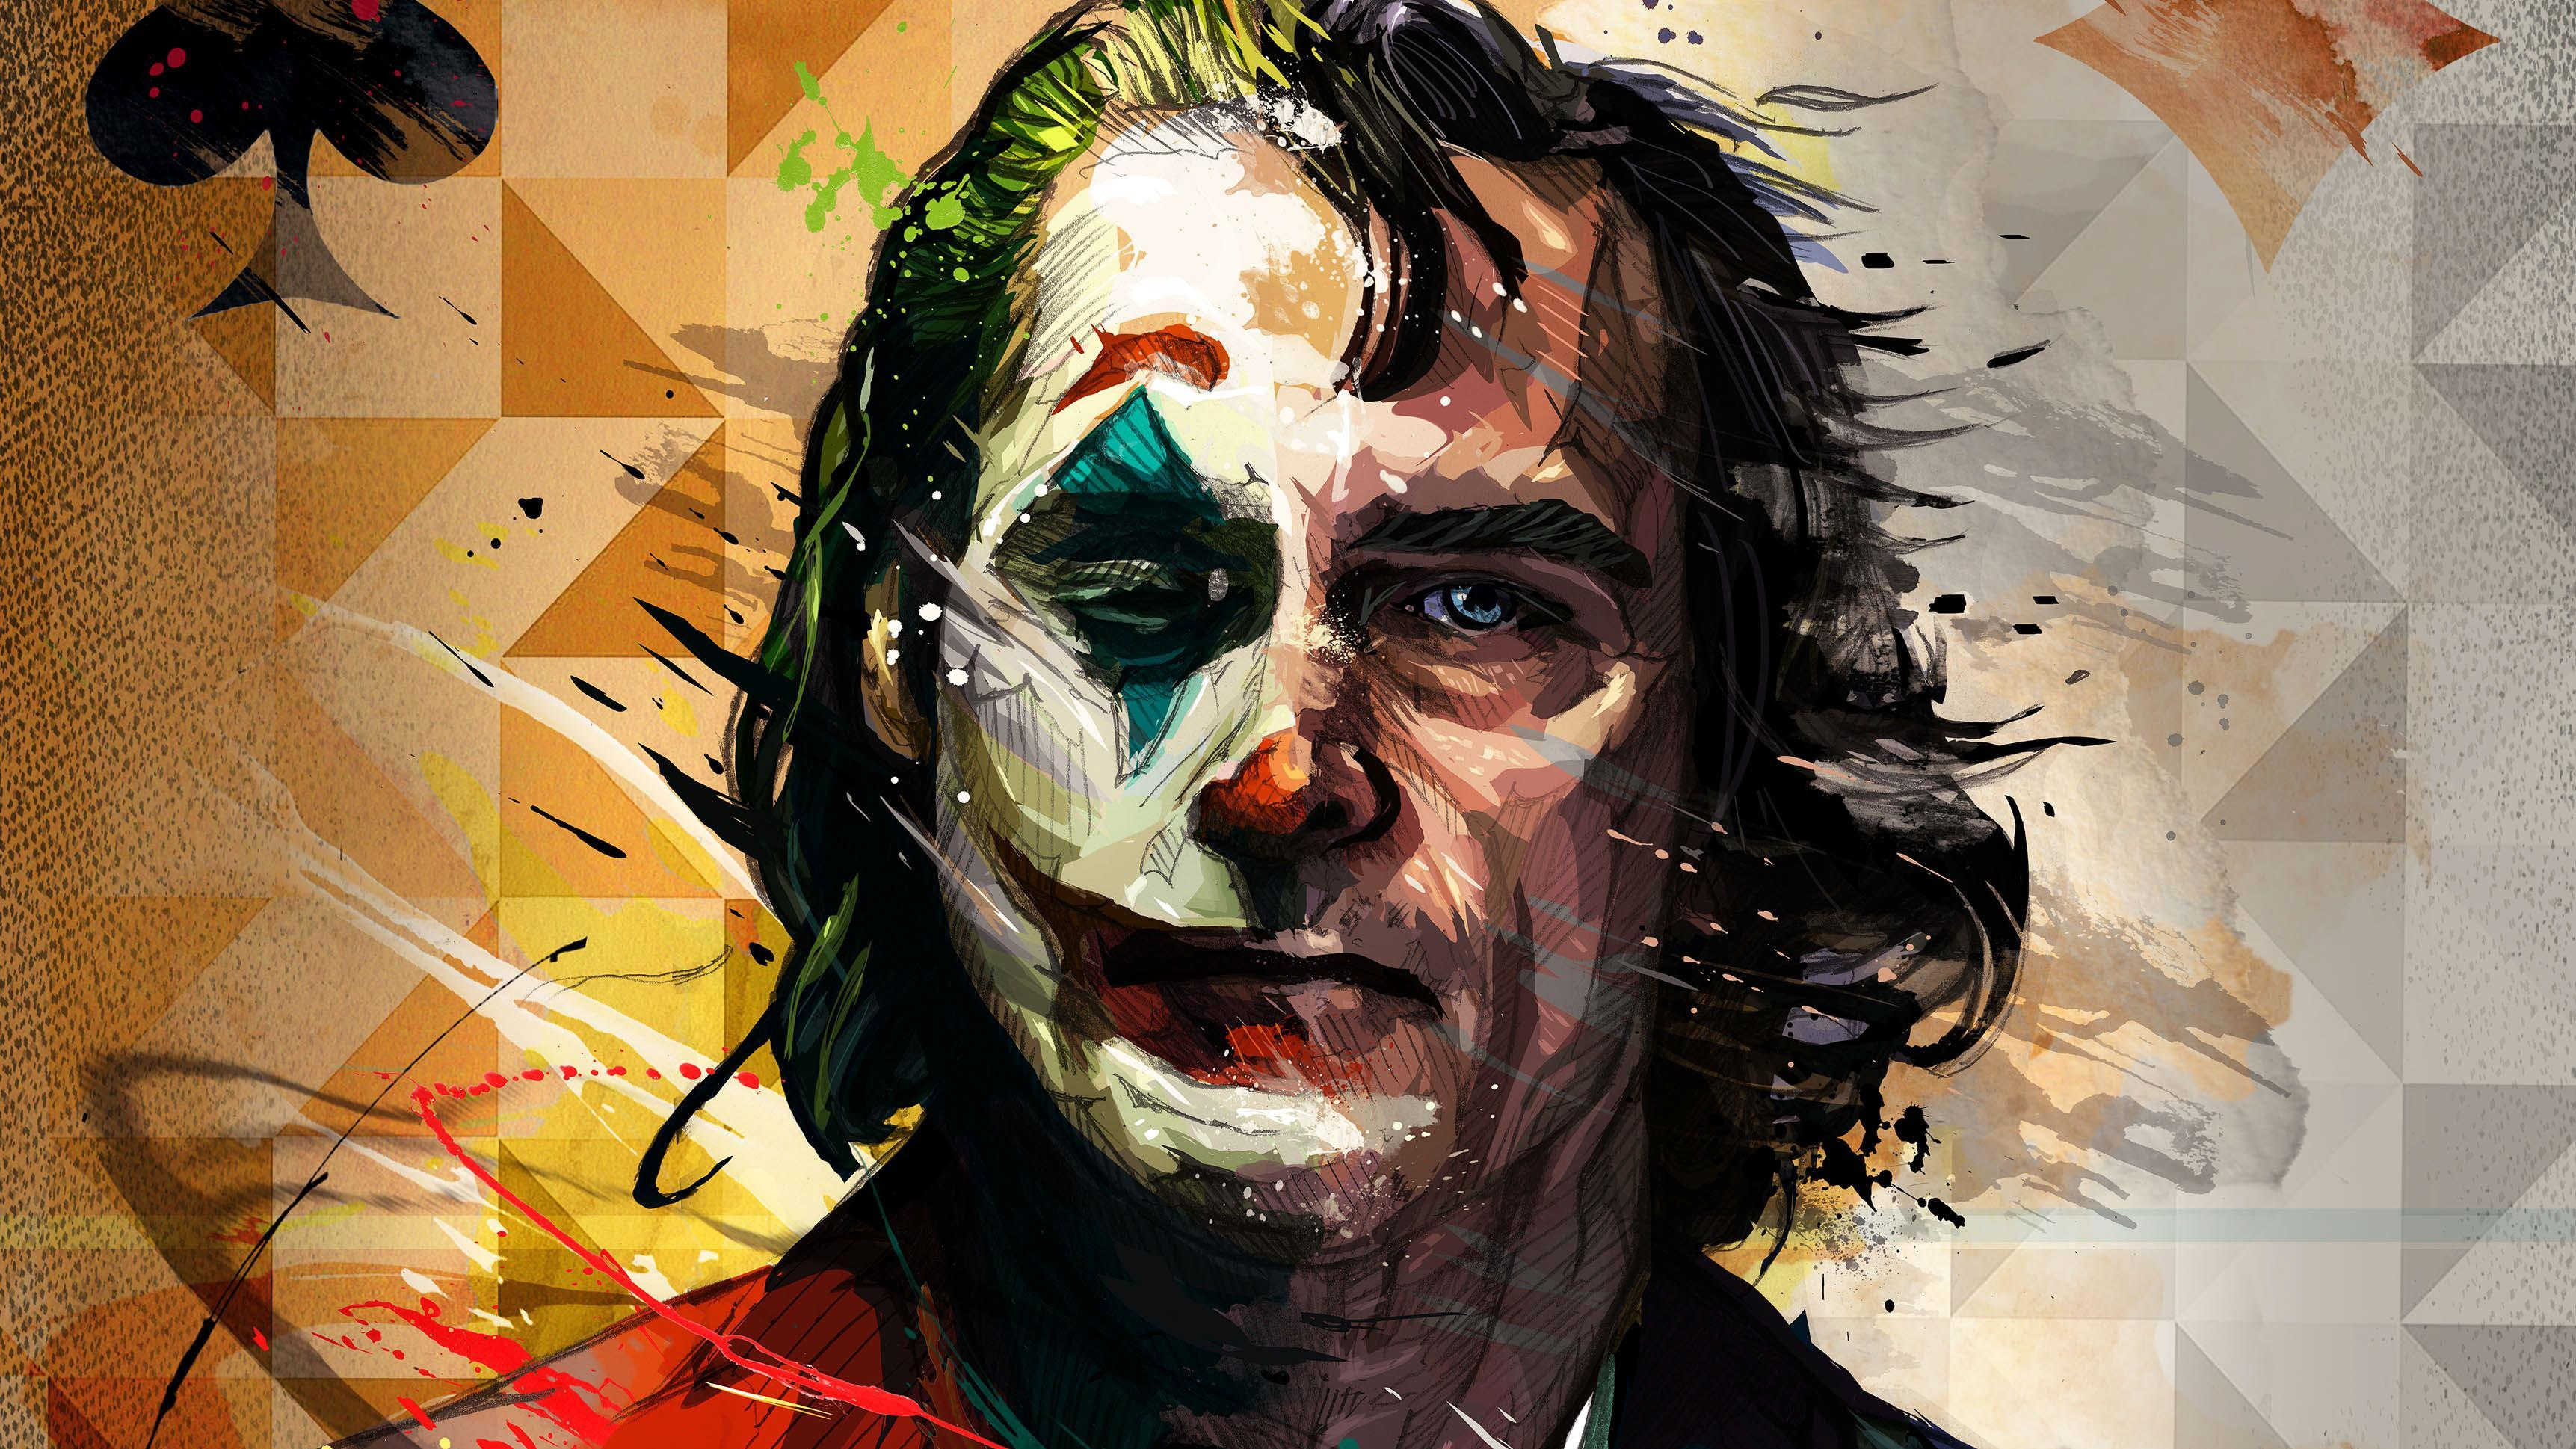 Joker 2019 HD wallpaper 🤡 for Android - APK Download